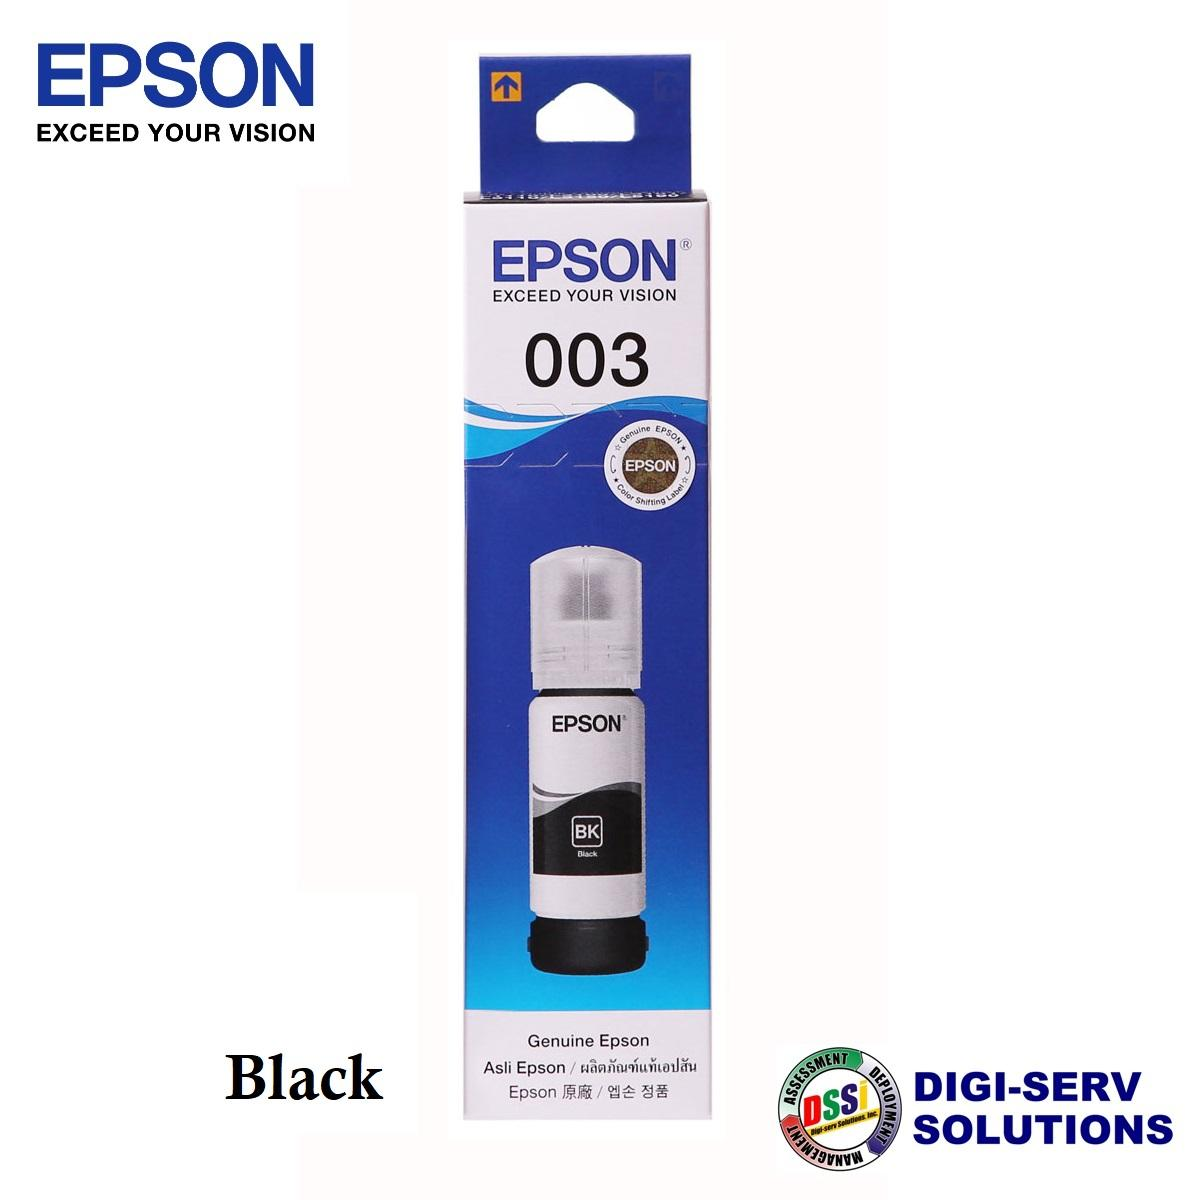 Epson 003 Original Ink Bottle C13T00V for Epson L3110 / L3150